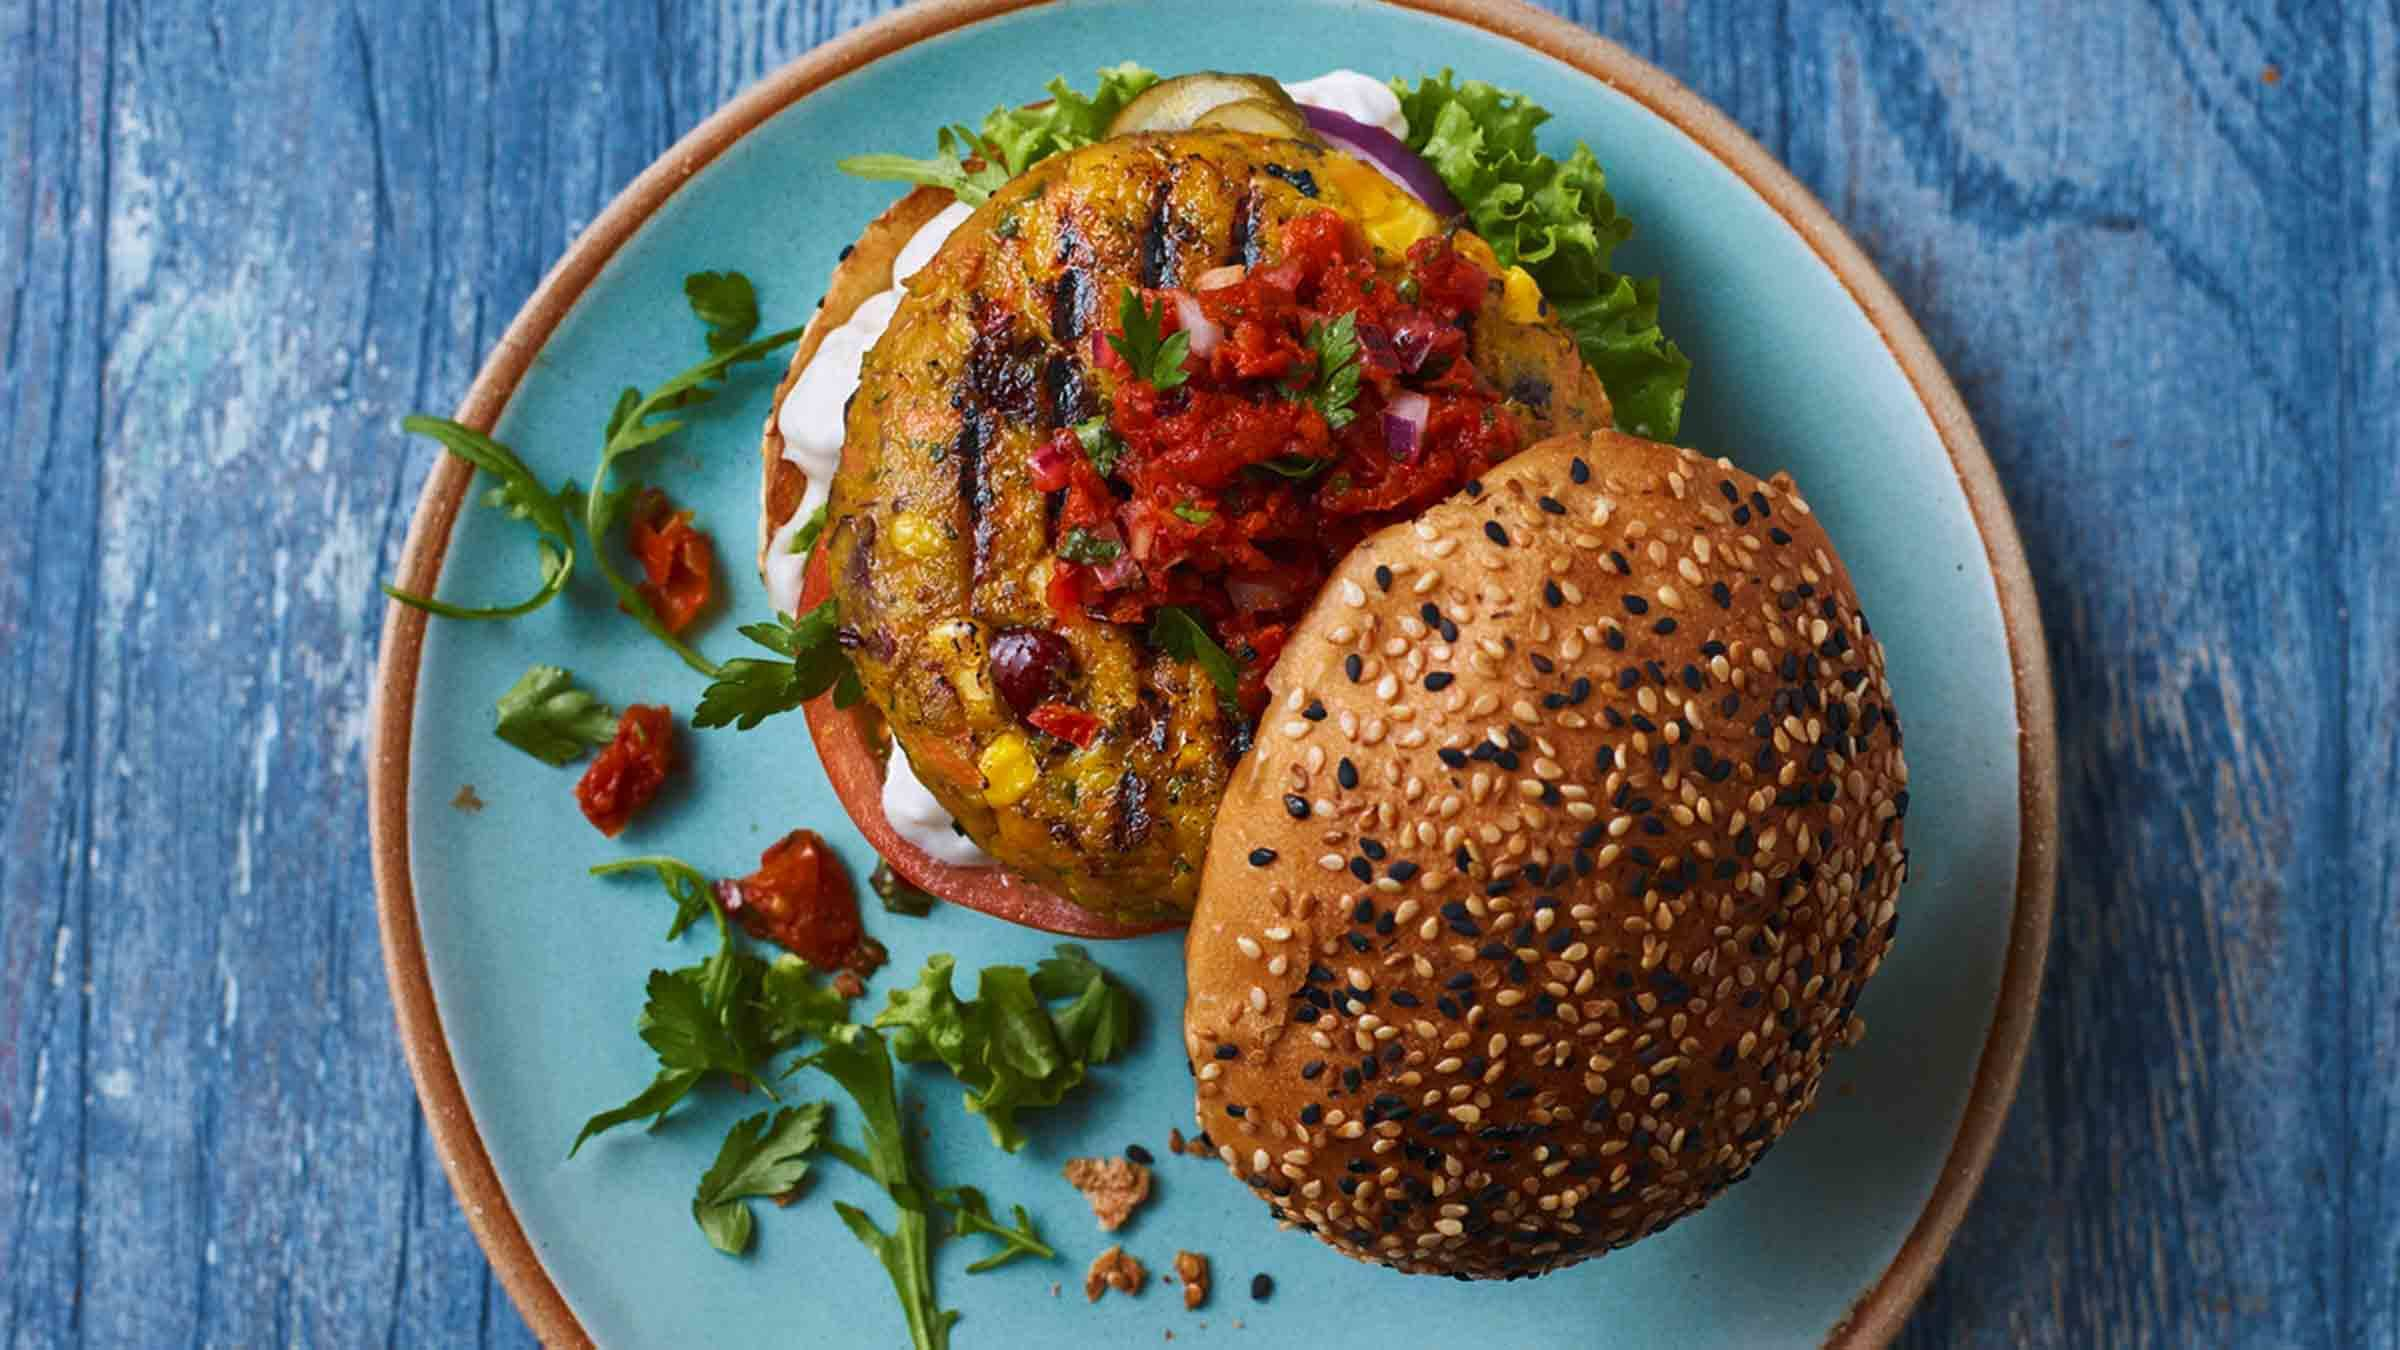 Vegan Burgers with Sun-Dried Tomatoes & Spinach